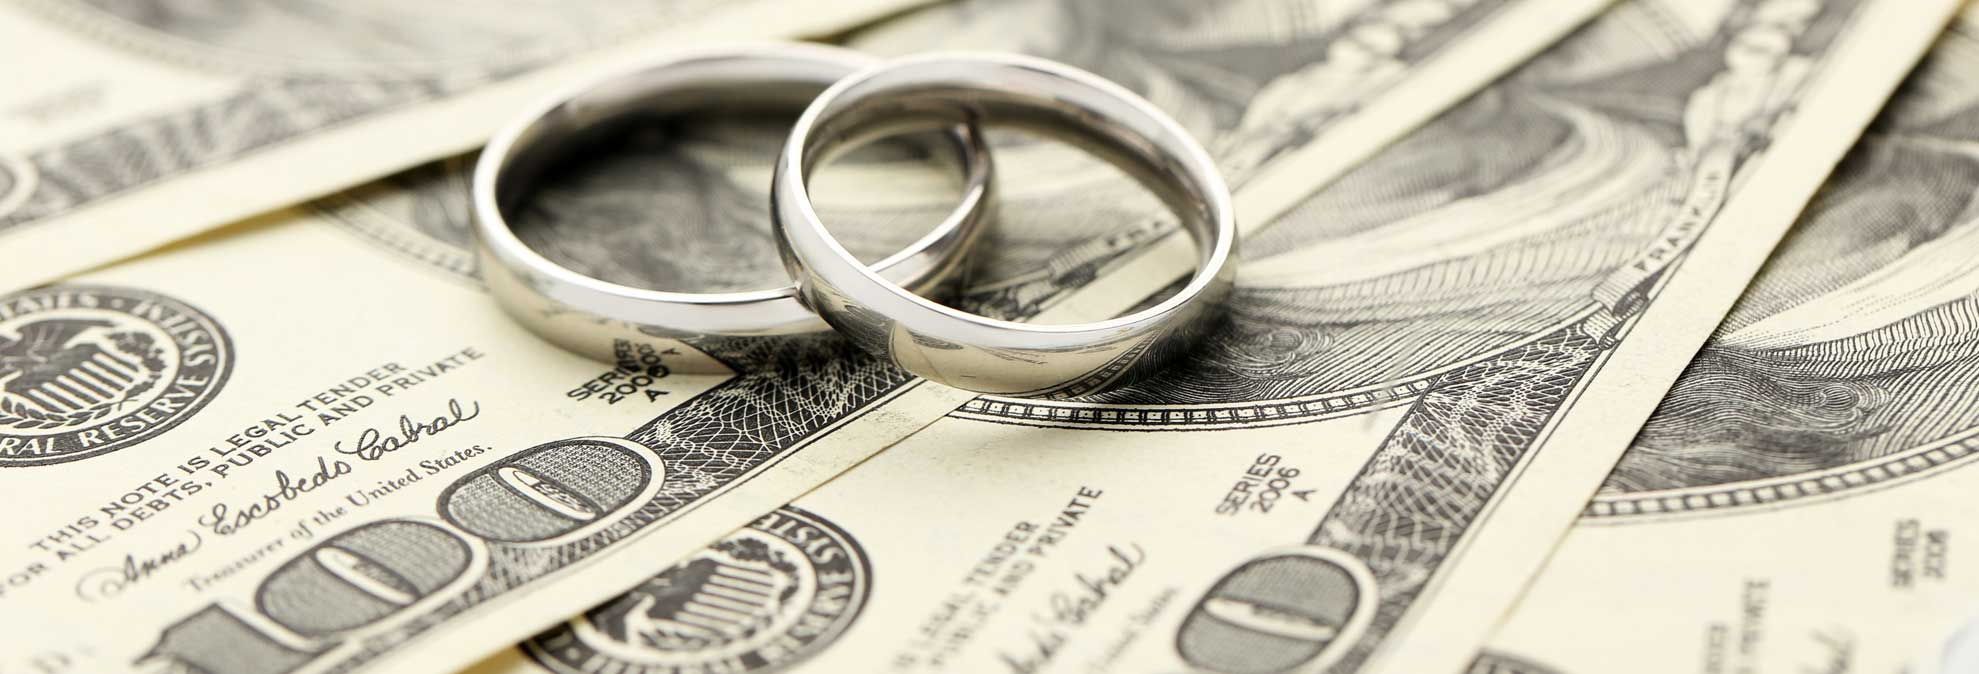 Sorry, Financial benefits of marriage really. agree